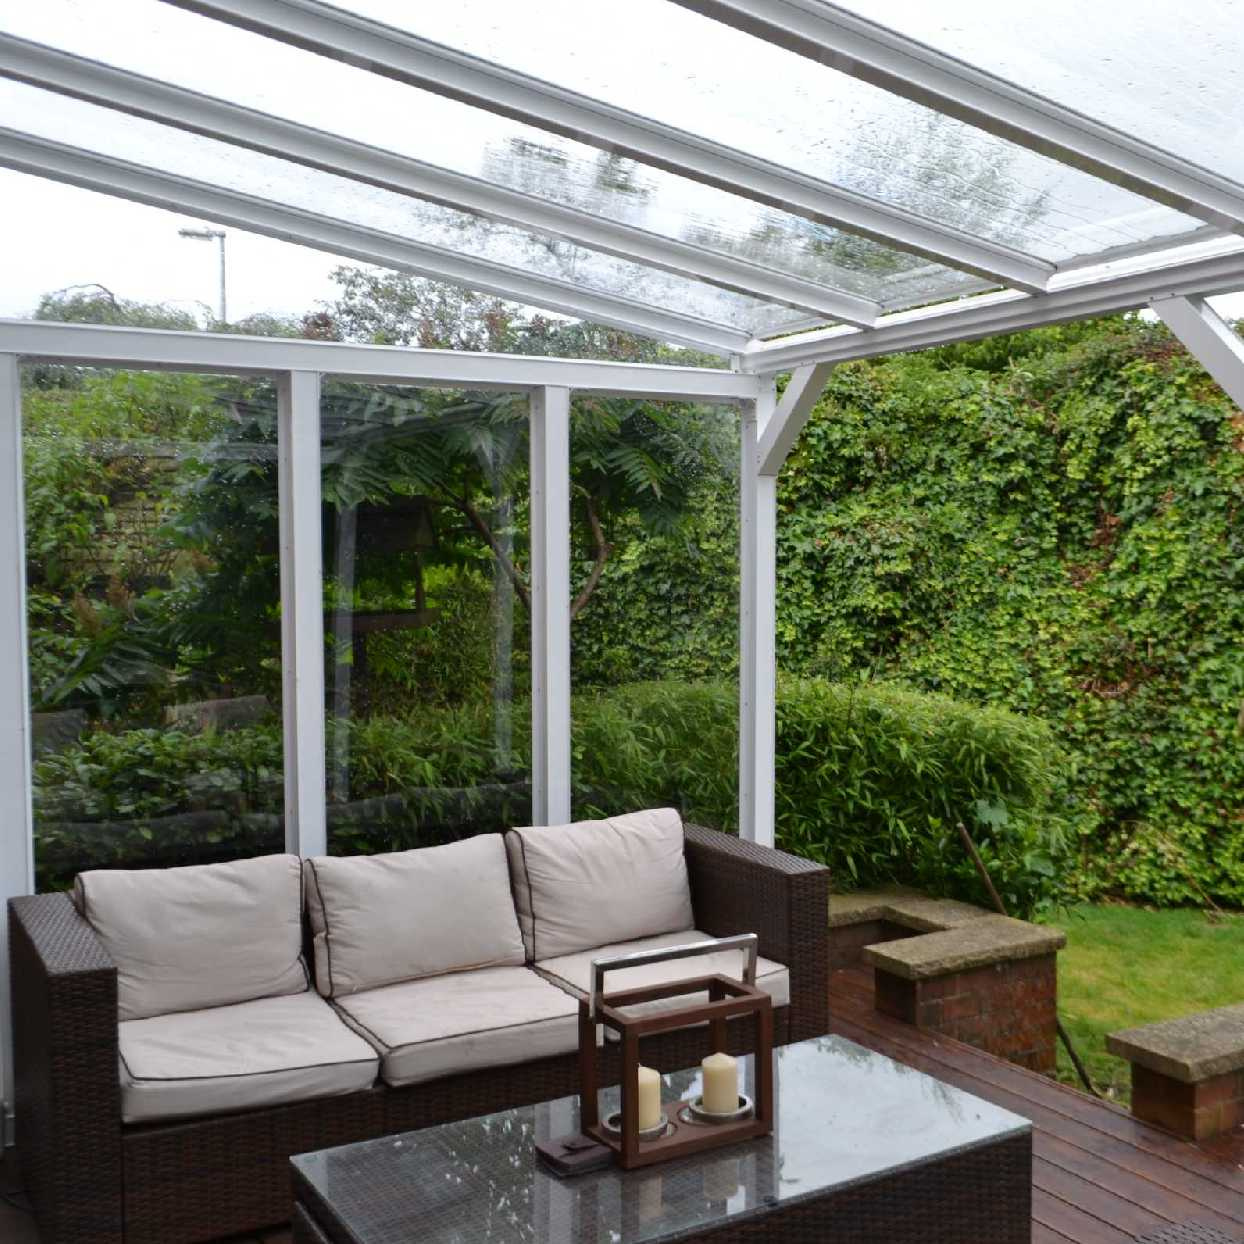 Great selection of Omega Smart Lean-To Canopy with 16mm Polycarbonate Glazing - 8.4m (W) x 4.0m (P), (4) Supporting Posts